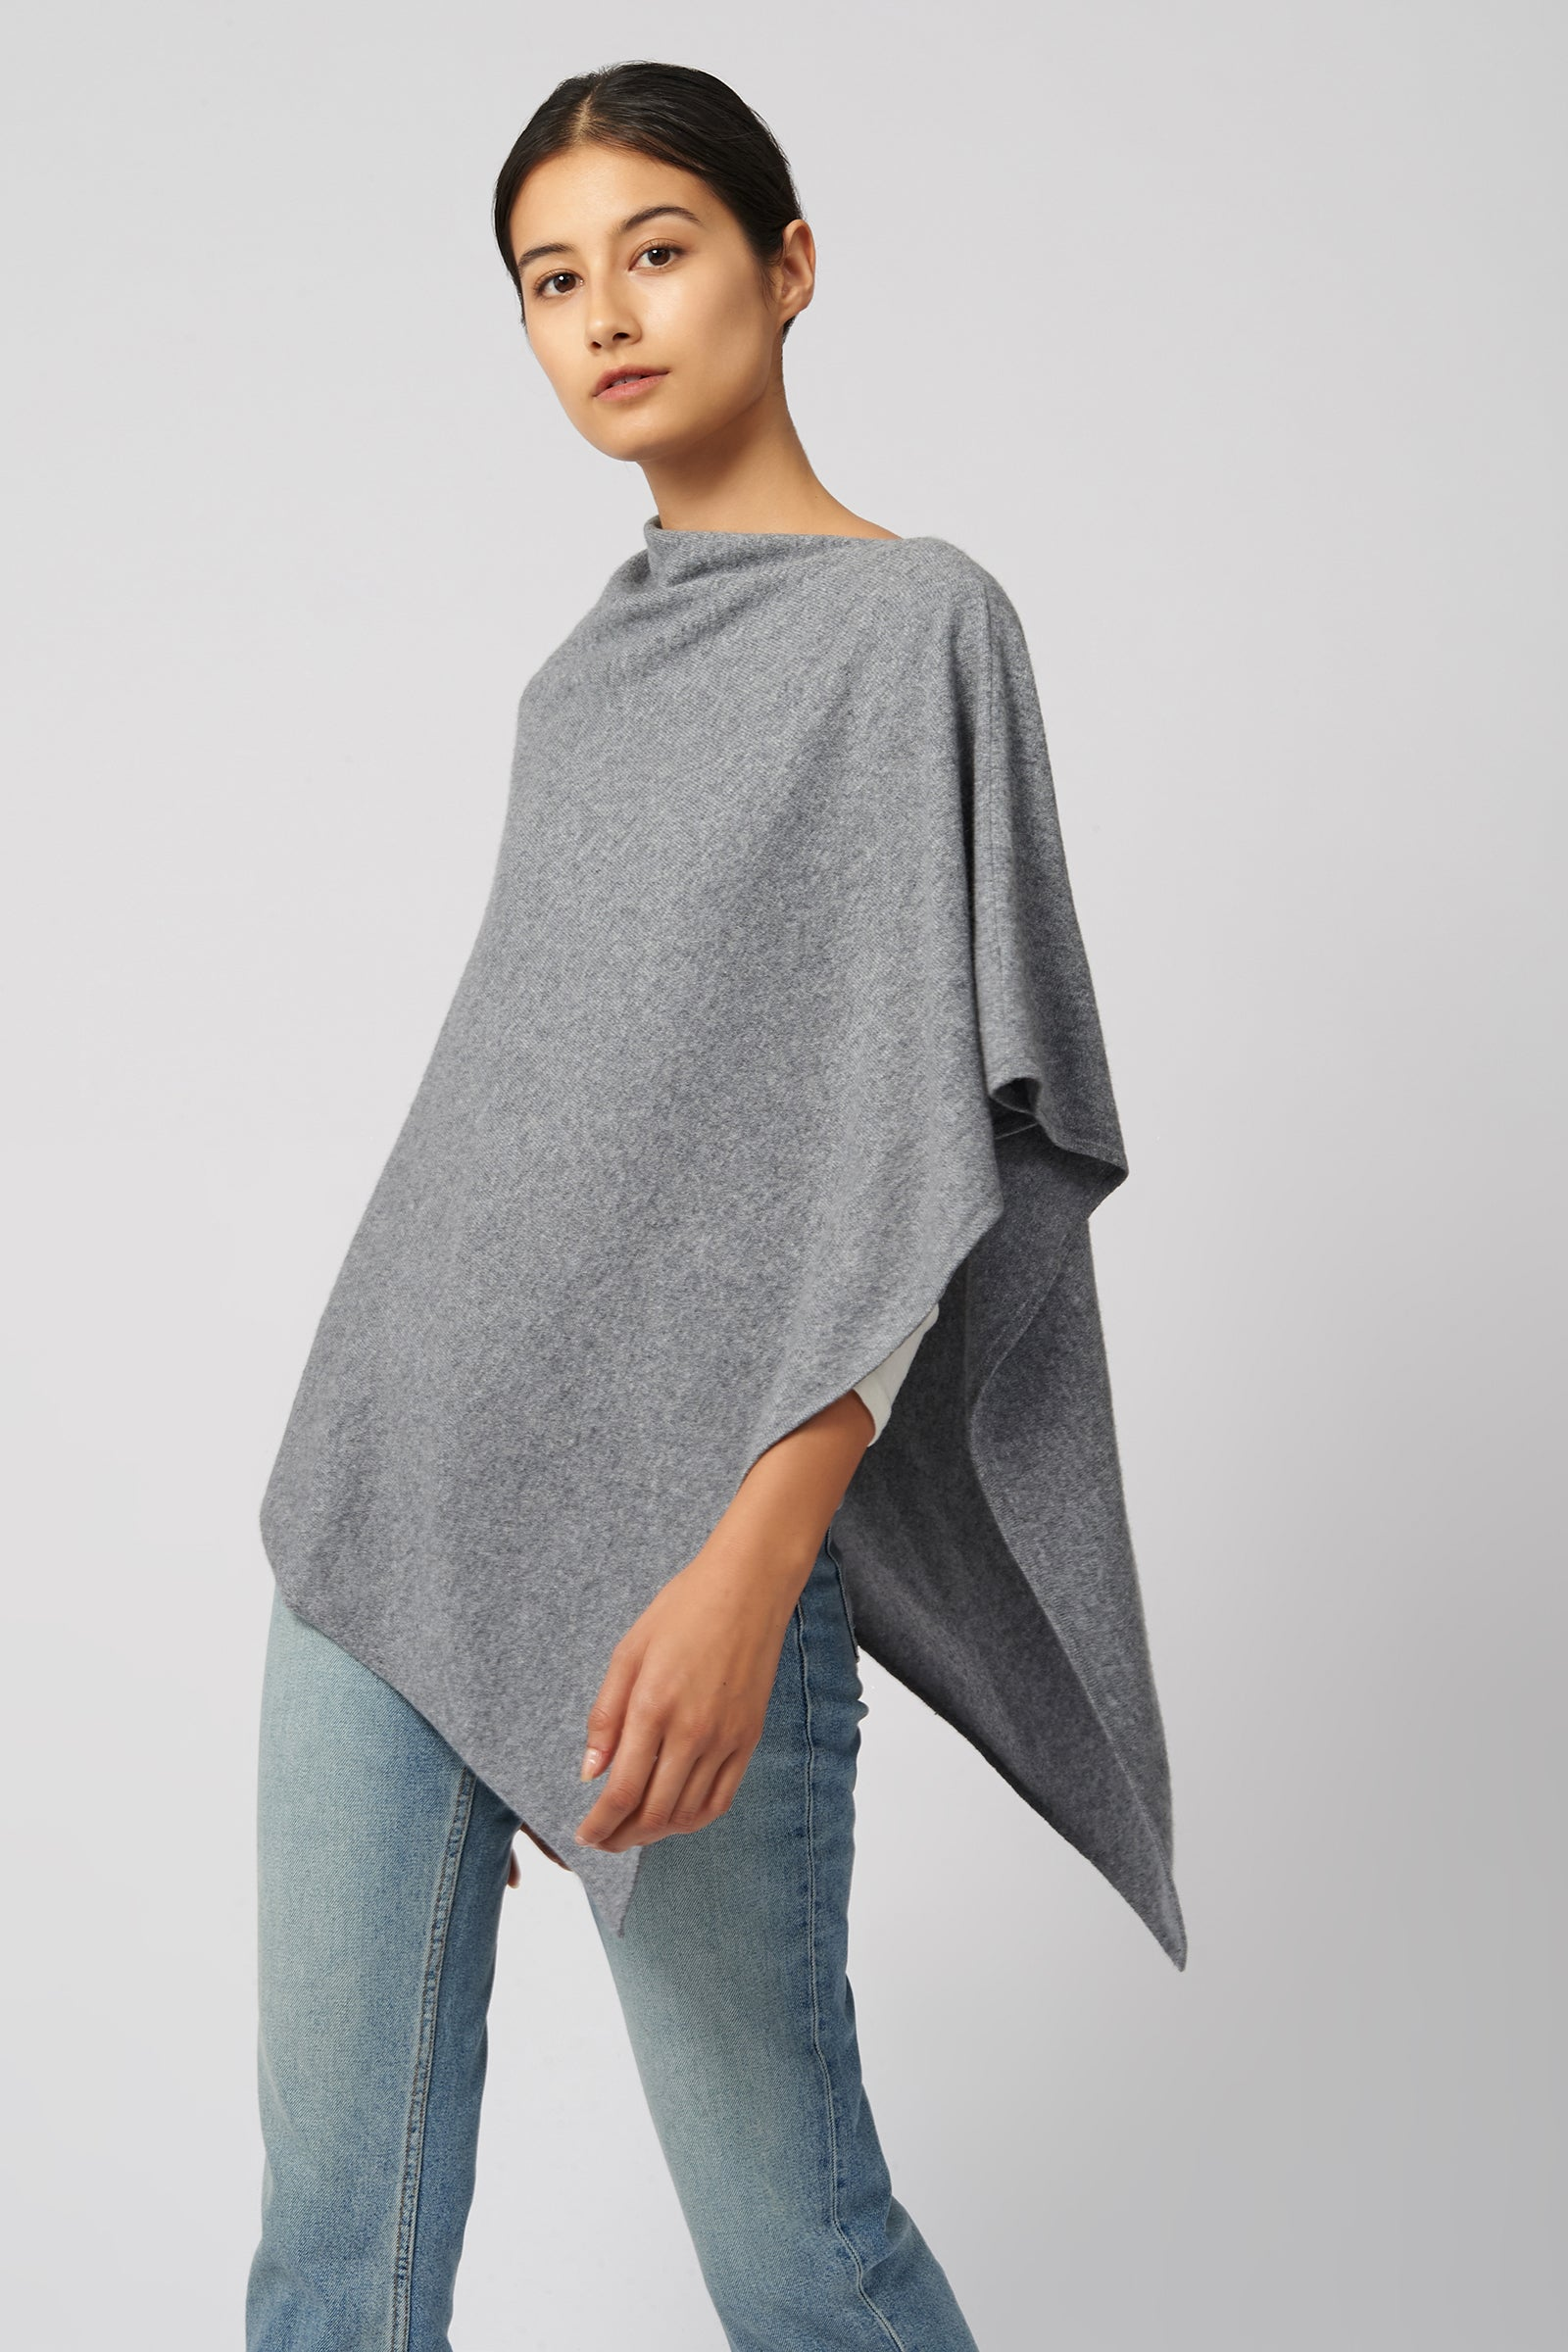 Kal Rieman Cashmere Poncho in Grey Flannel on Model Side View